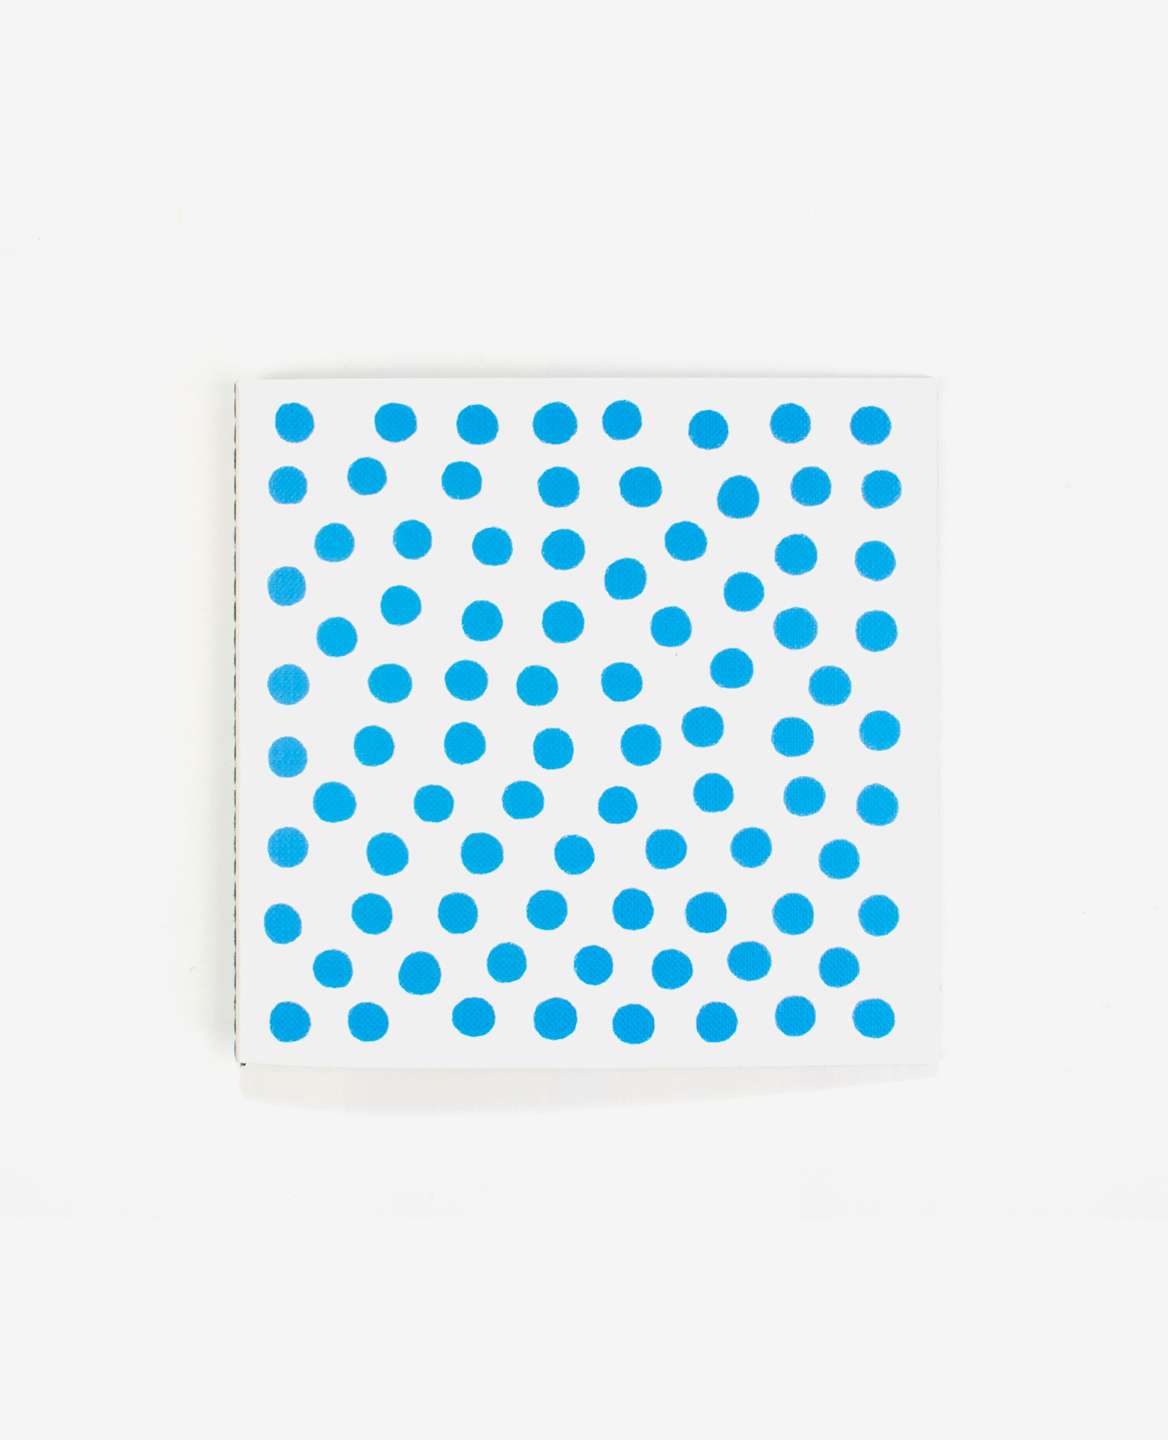 Blue spots on the cover of the book Colors by Antonio Ladrillo published by Éditions du livre